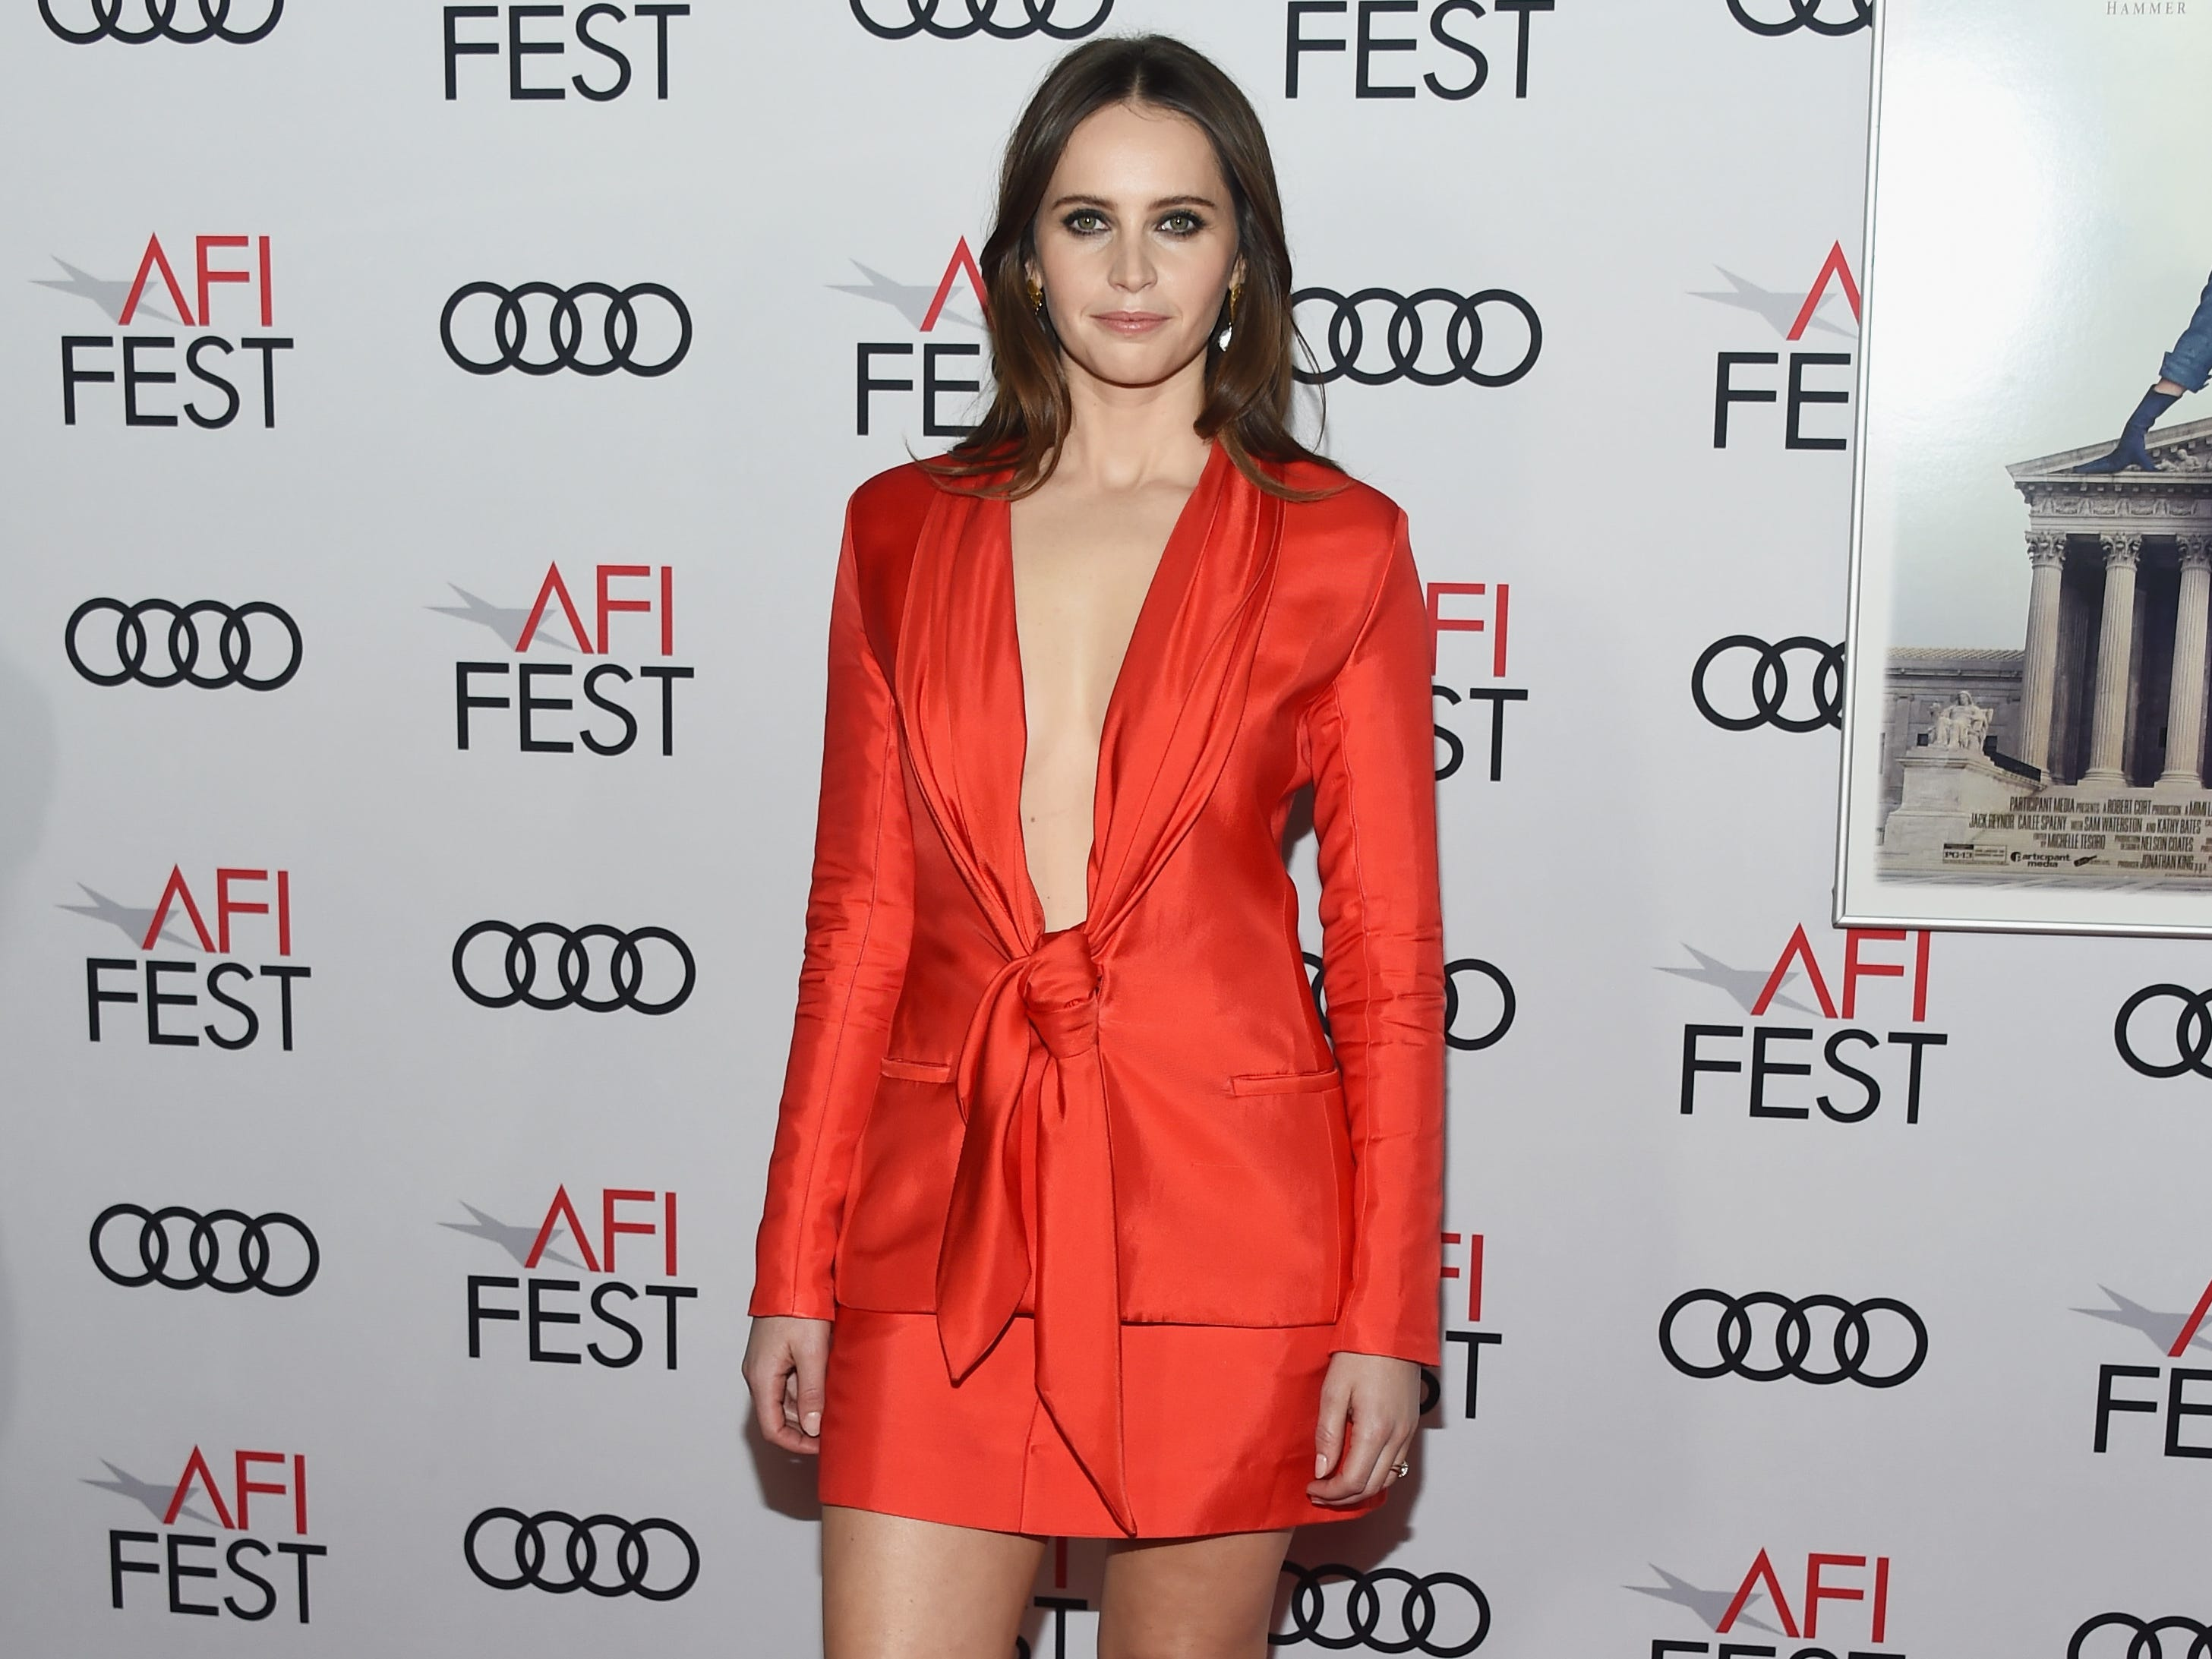 "HOLLYWOOD, CA - NOVEMBER 08:  Actress Felicity Jones arrives at the AFI FEST 2018 Presented By Audi Opening Night World Premiere Gala Screening of ""On The Basis Of Sex"" at the TCL Chinese Theatre on November 8, 2018 in Hollywood, California.  (Photo by Amanda Edwards/WireImage) ORG XMIT: 775251094 ORIG FILE ID: 1059466512"